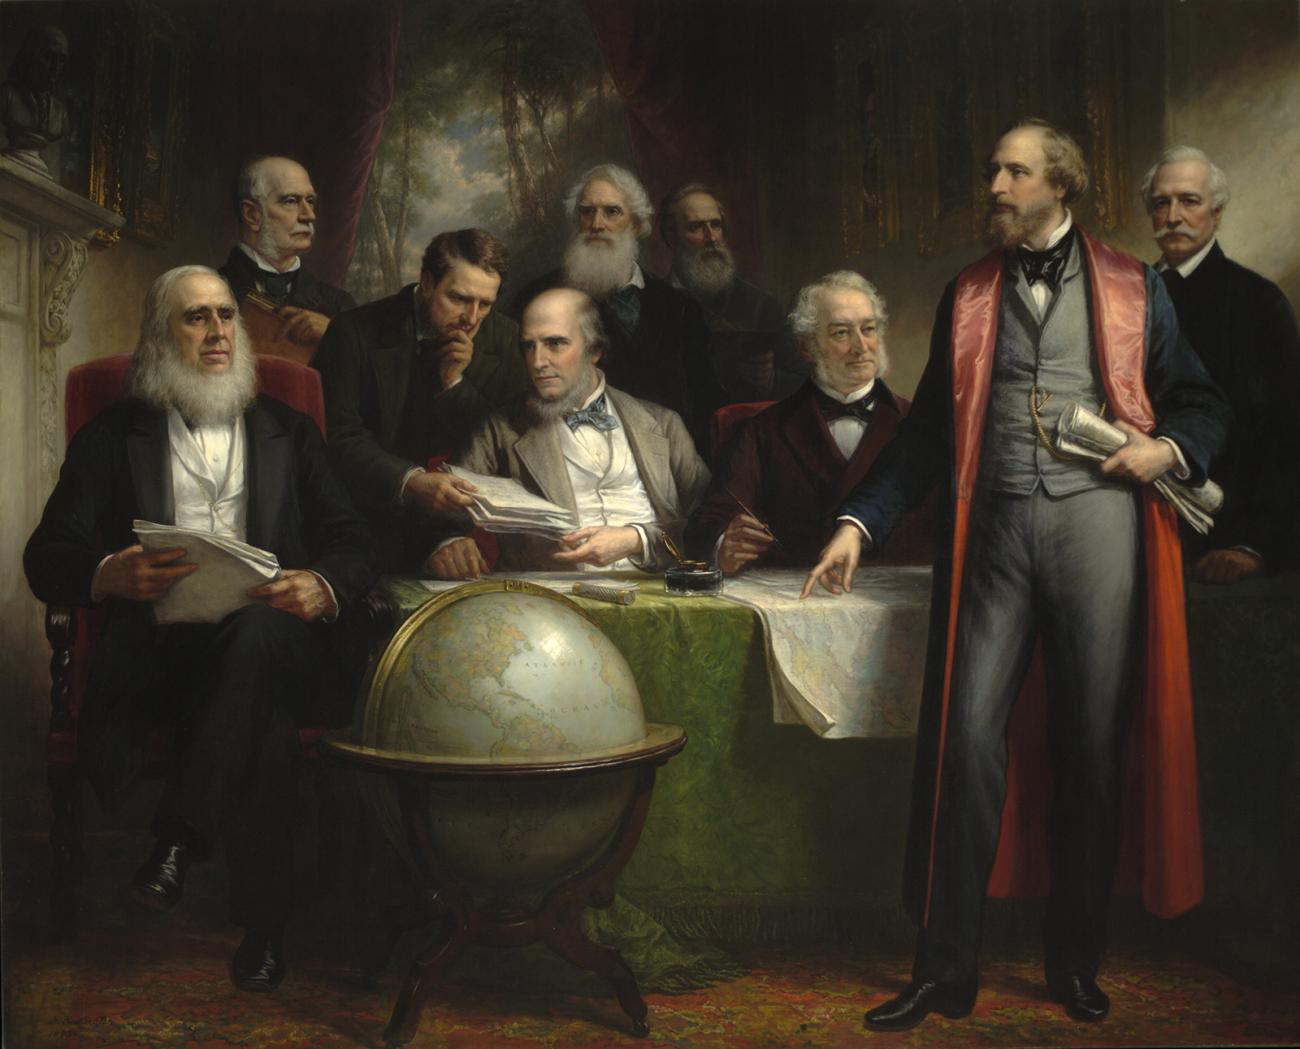 A room with men and a globe